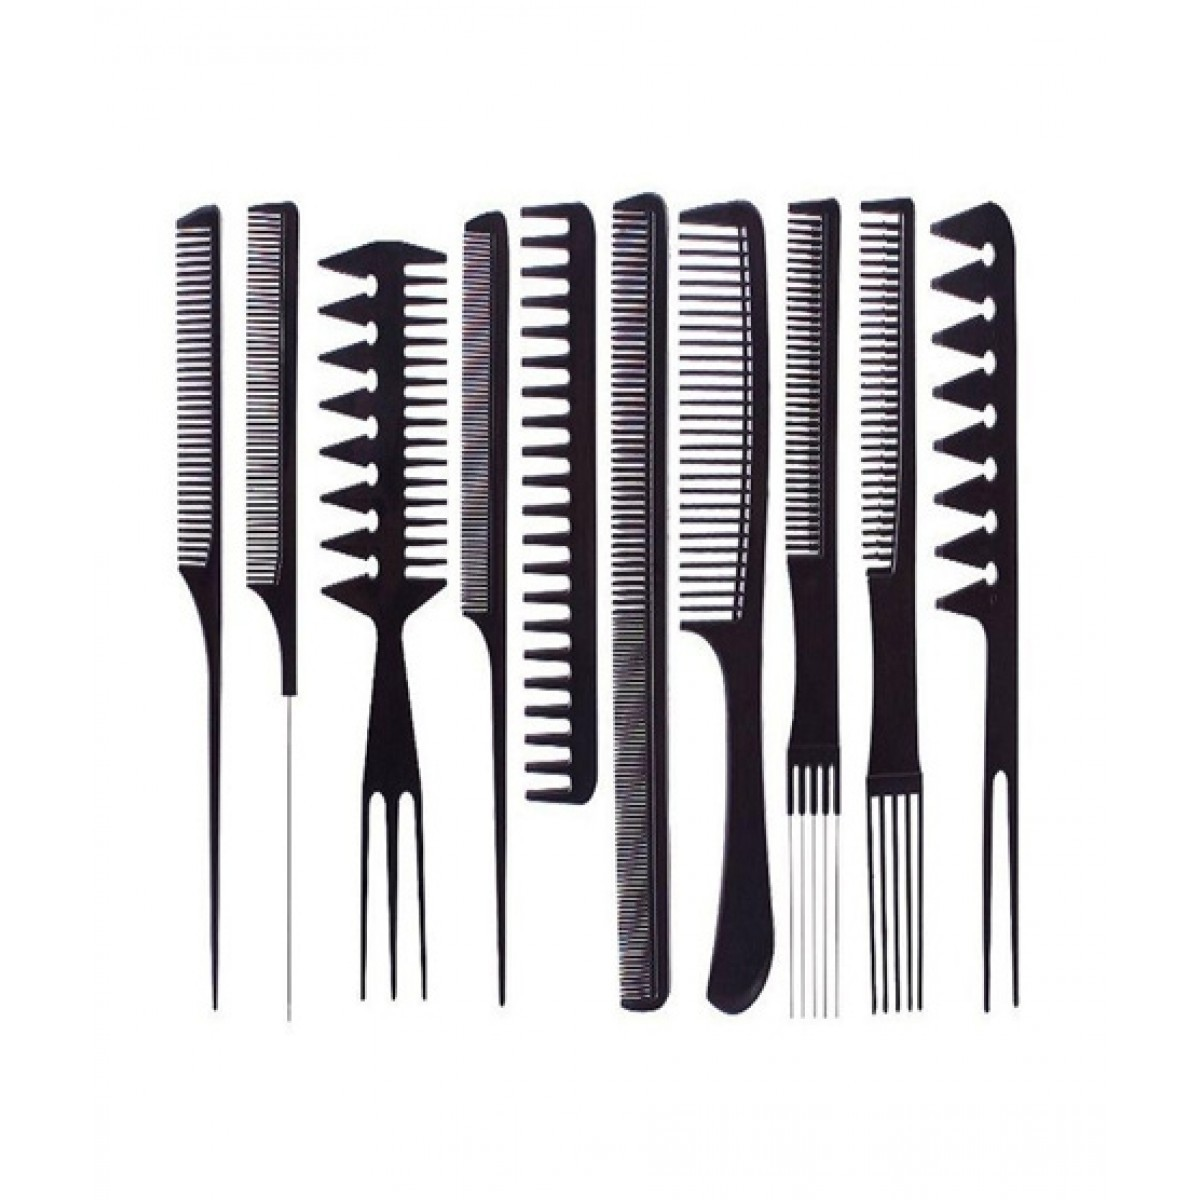 Parlour & Salon Use Hair Comb Set